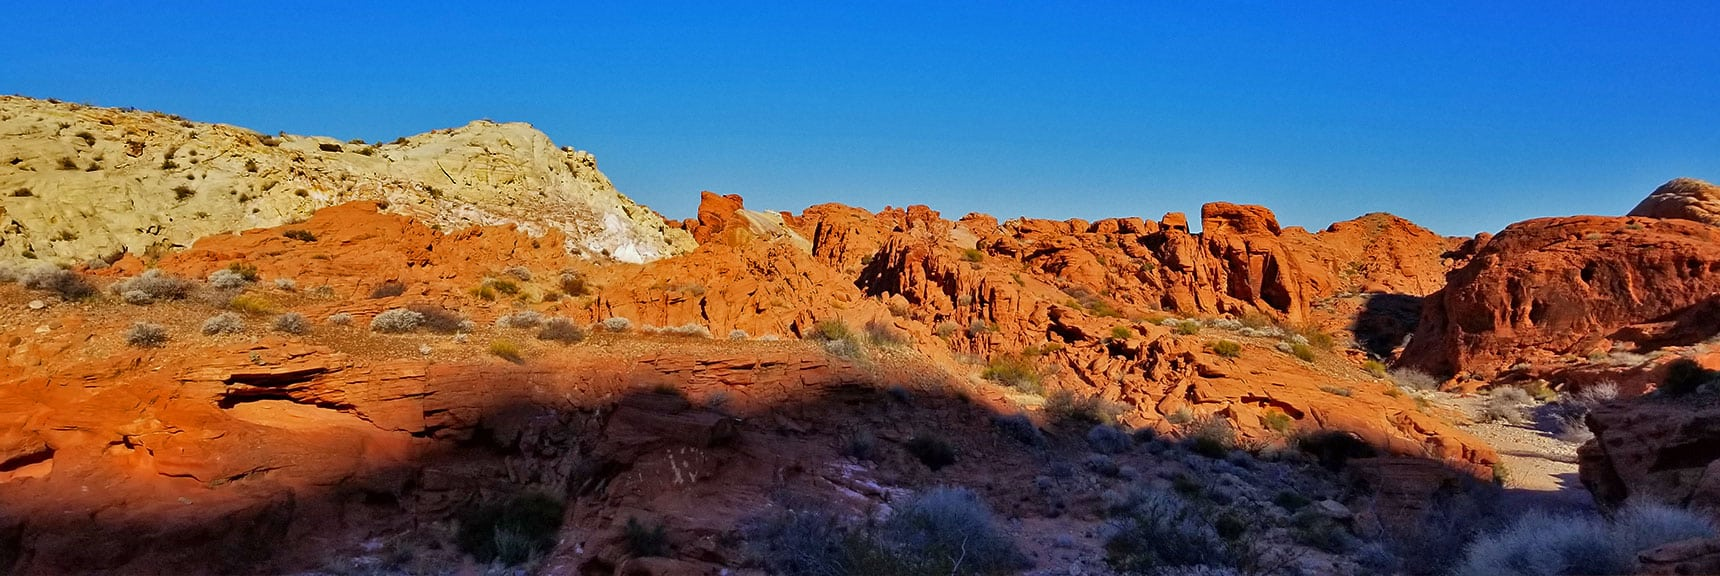 Contrasting Red and White Rock Formations in the Northern Portion of Prospect Trail in Valley of Fire State Park, Nevada